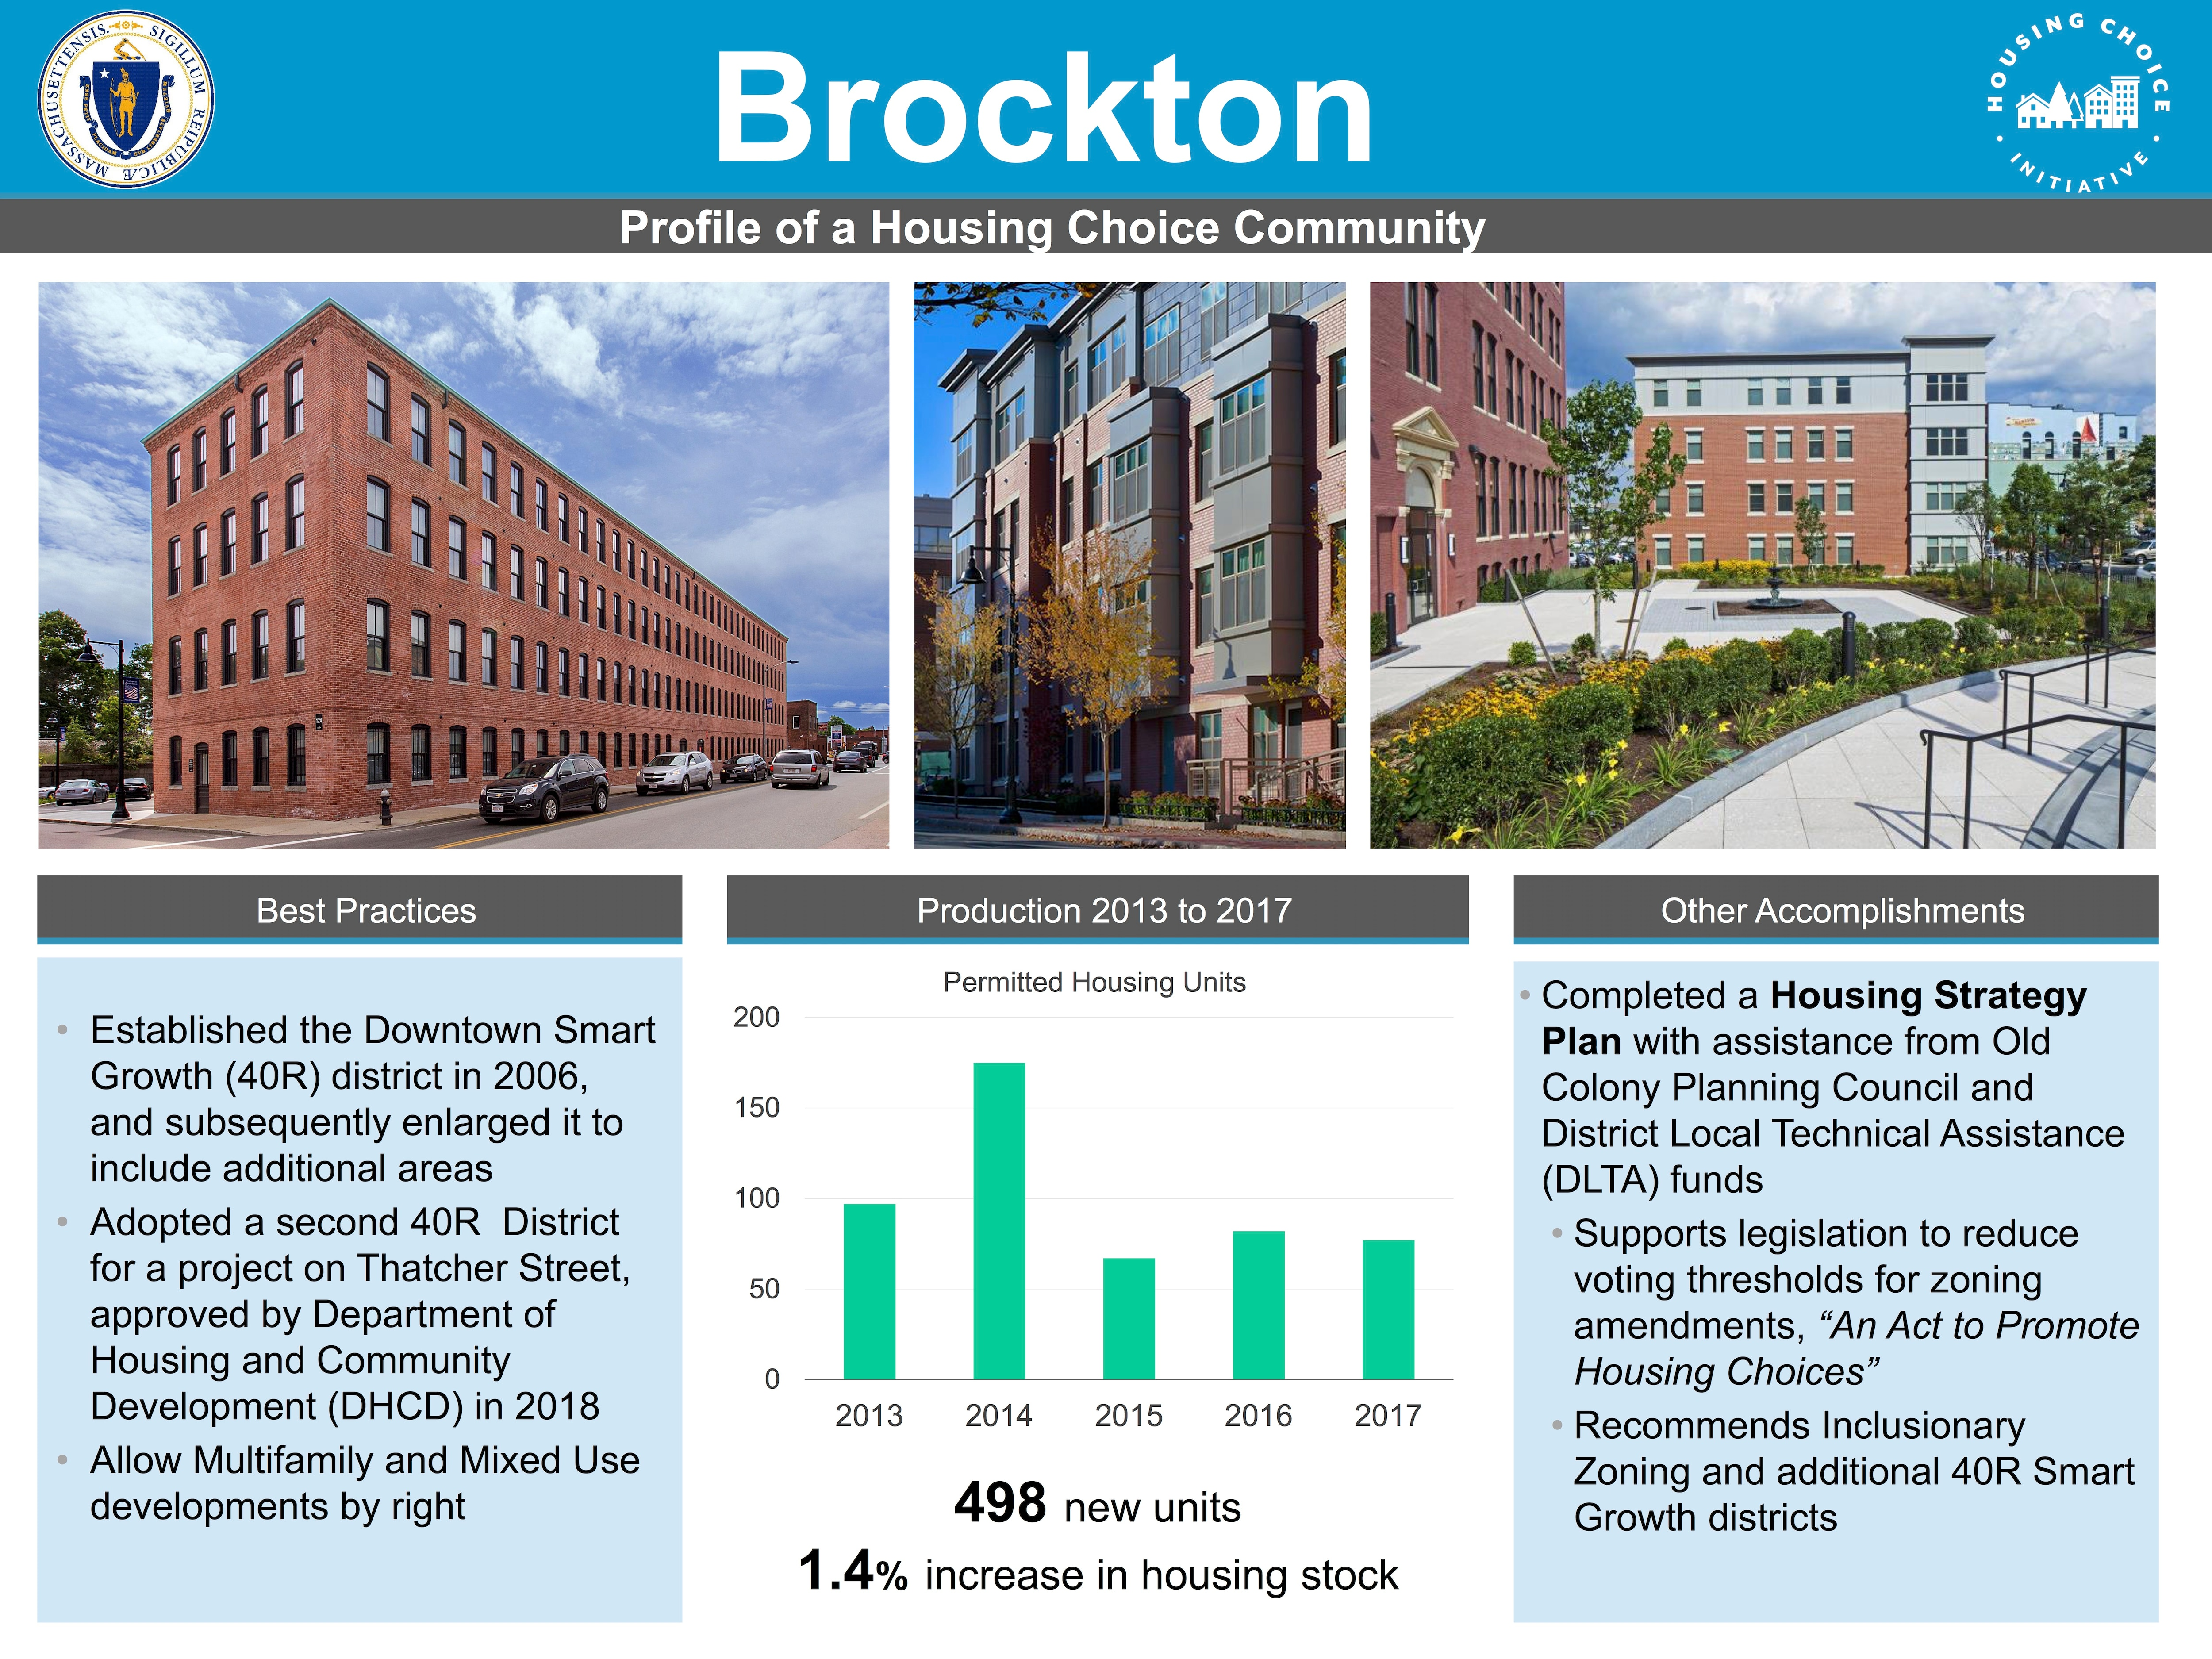 Profile of a Housing Choice Community - Brockton